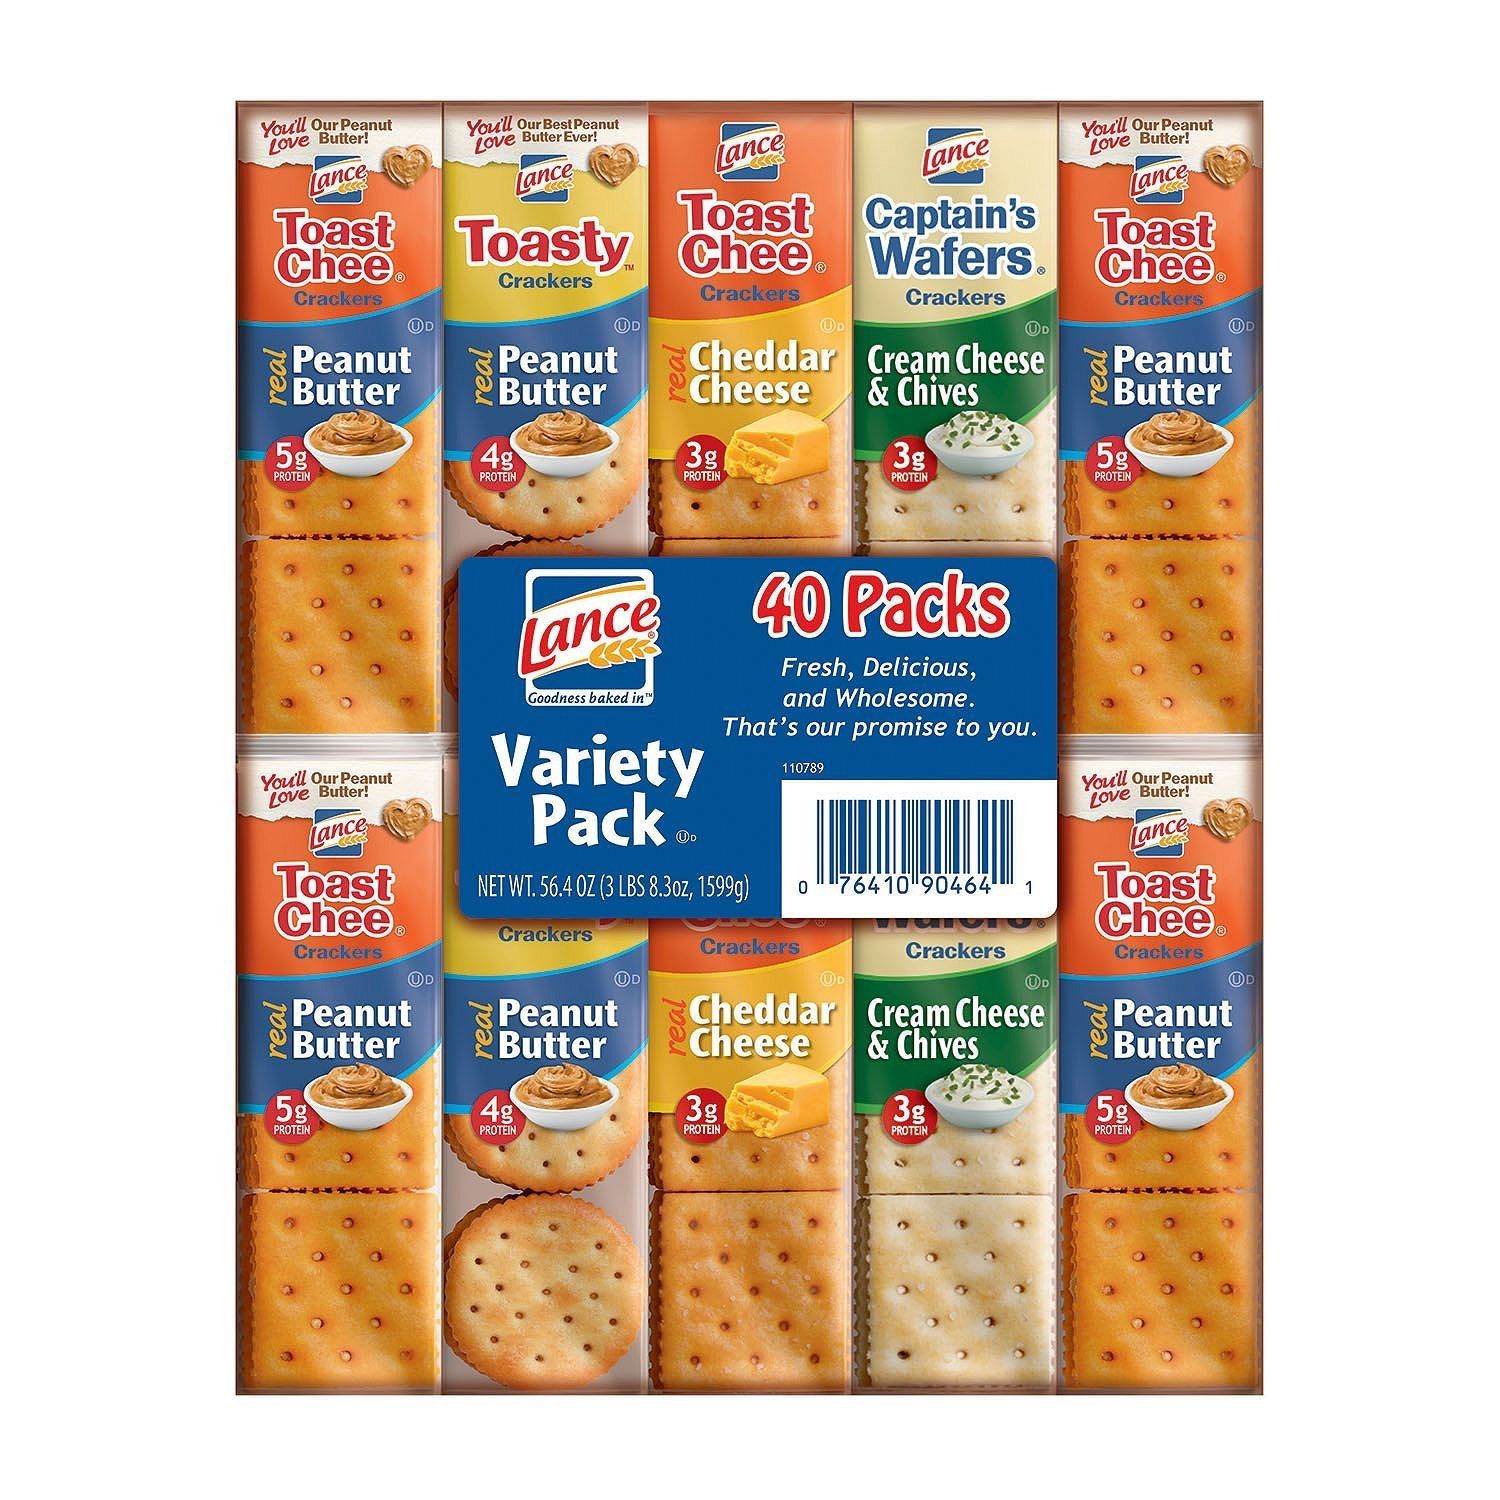 Lance Variety Pack,40 count, (56.8 oz total weight) by Lance